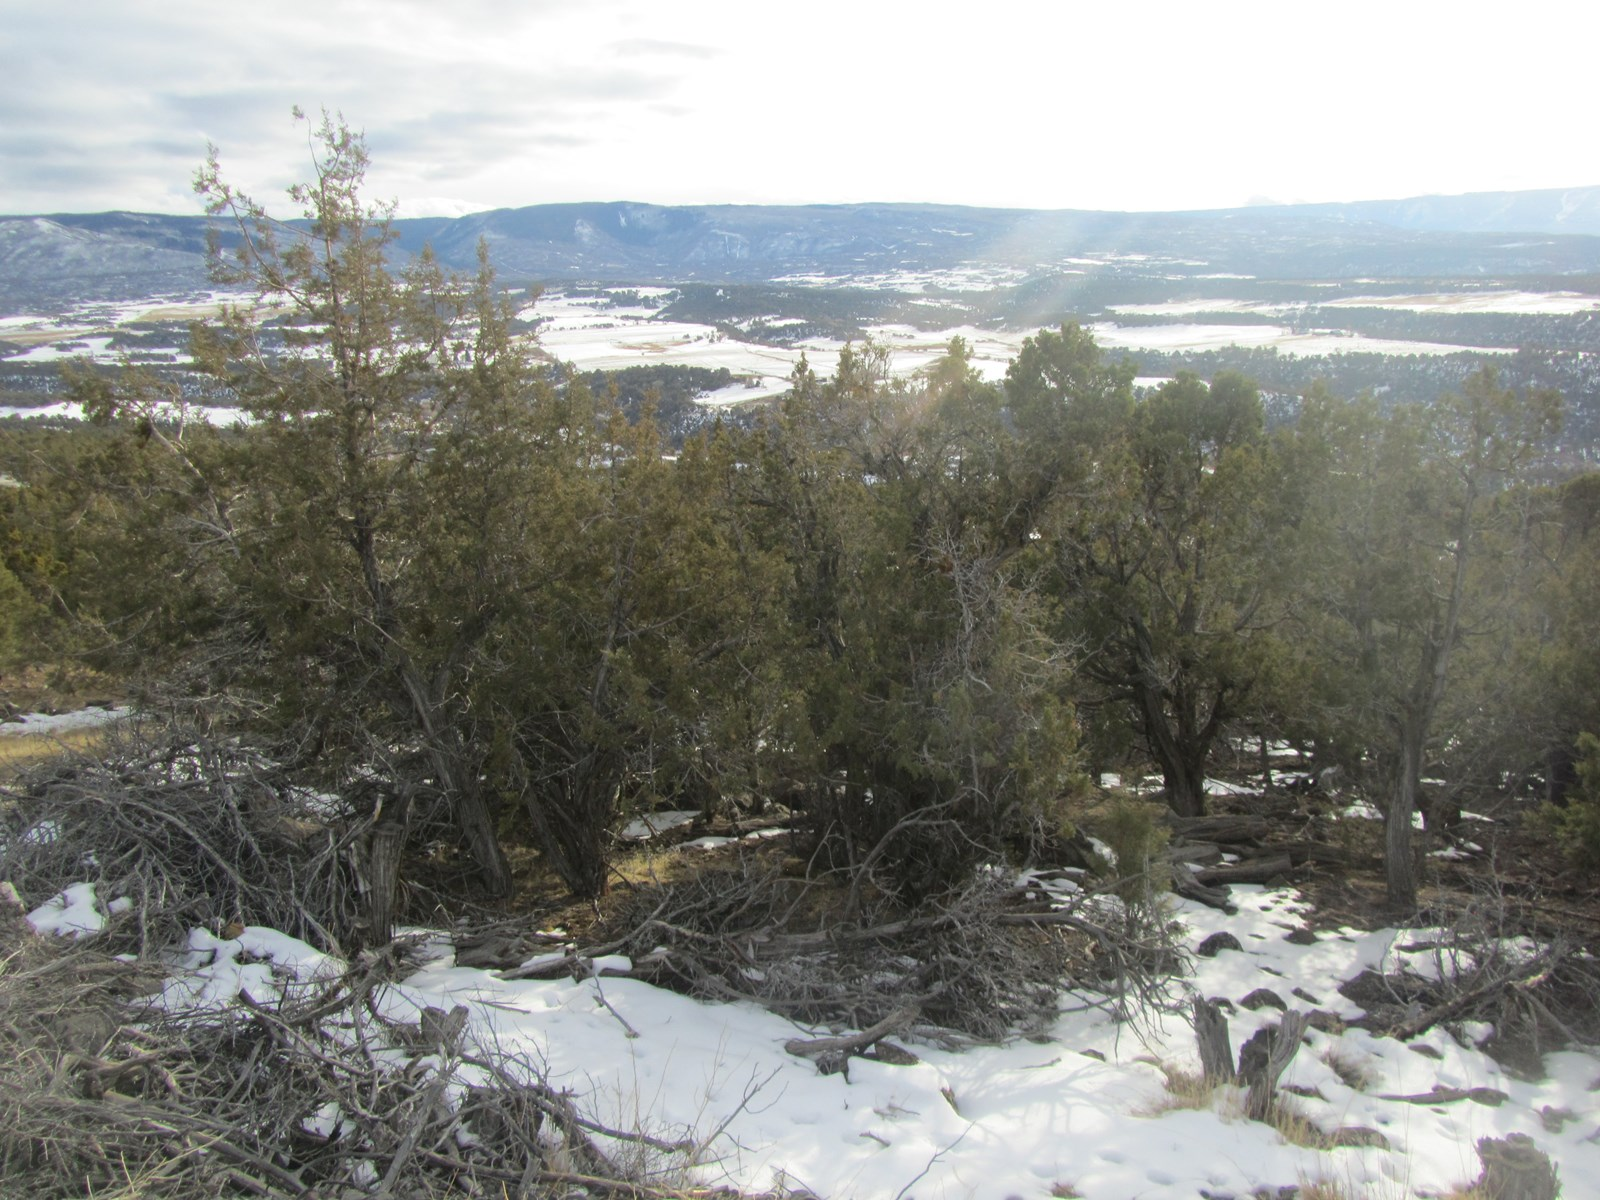 Land Investment Opportunity 3 parcels in Colorado For Sale